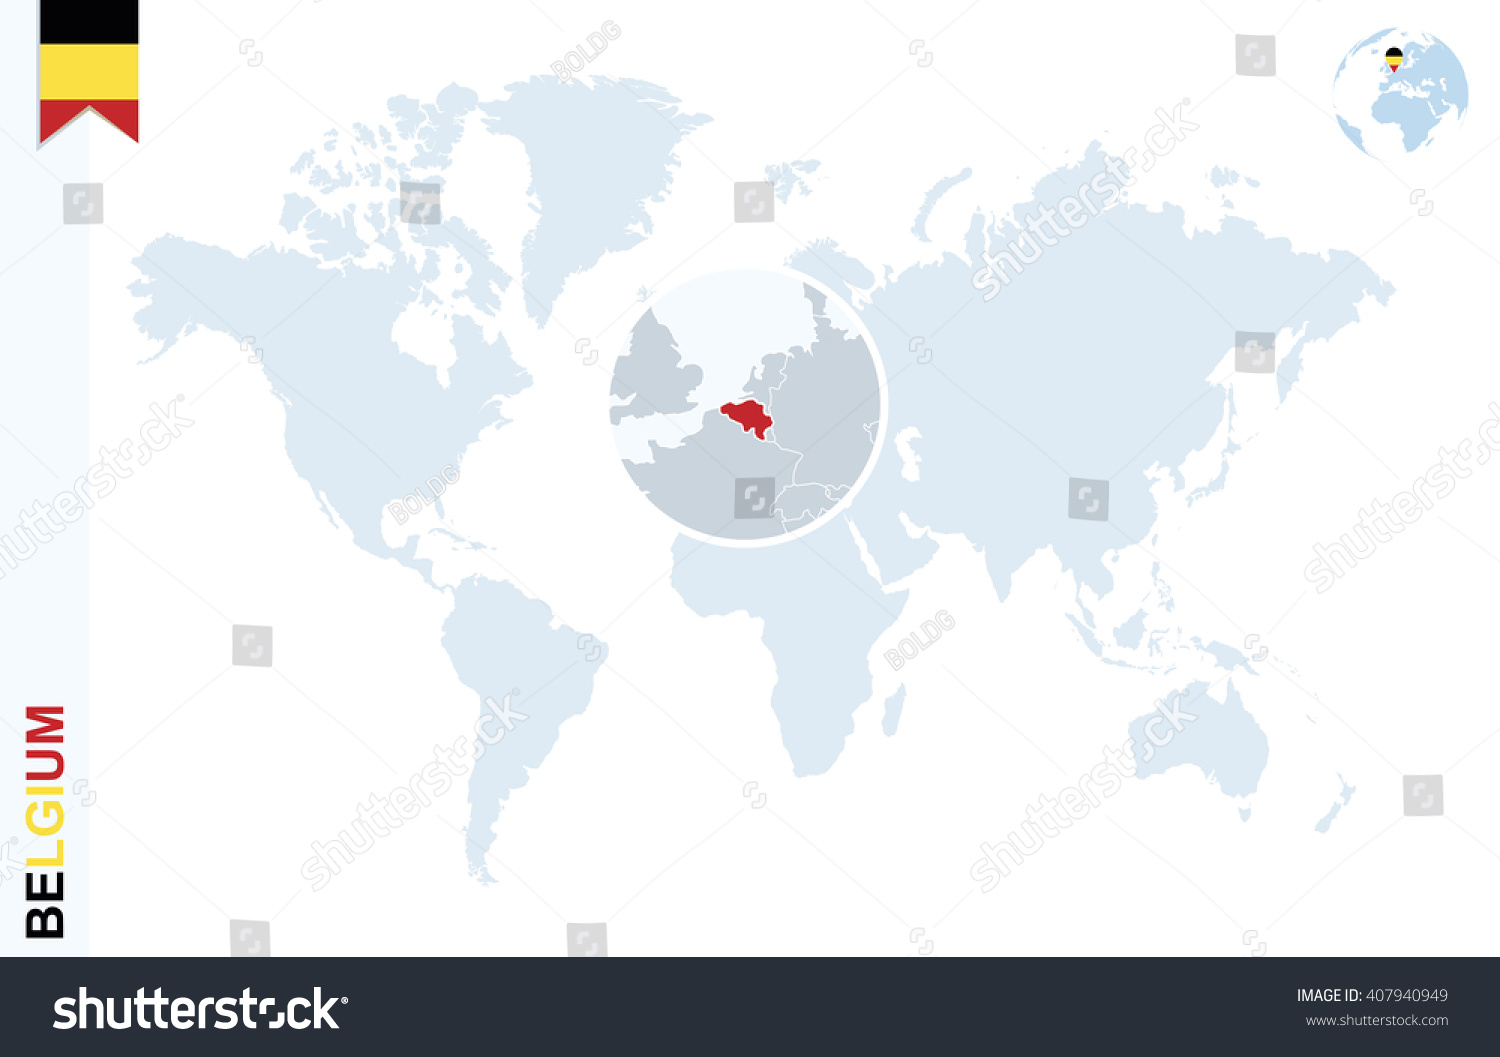 World Map Magnifying On Belgium Blue Vector 407940949 – Belgium on a World Map